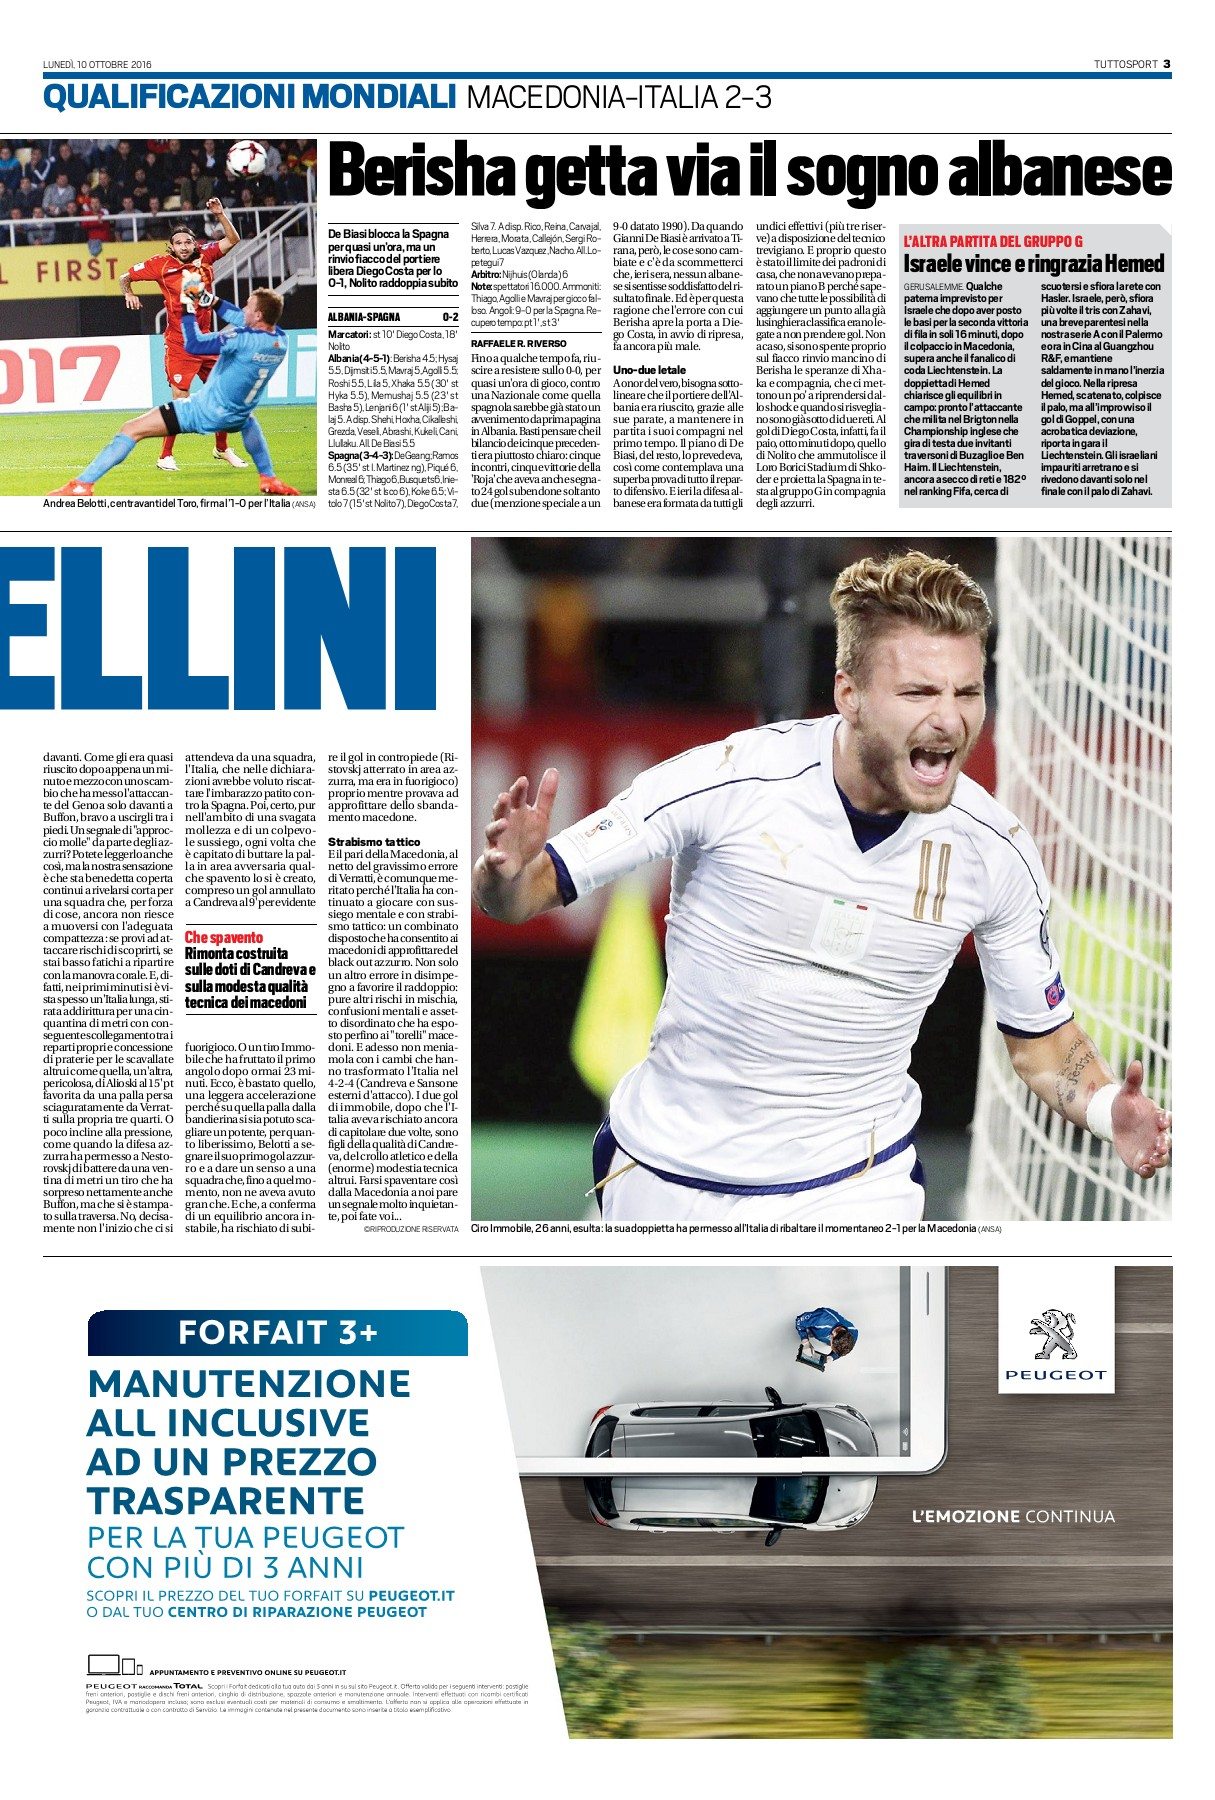 TuttoSport - 10 Ottobre 2016 Pages 1 - 28 - Text Version  eb454b0c7ed